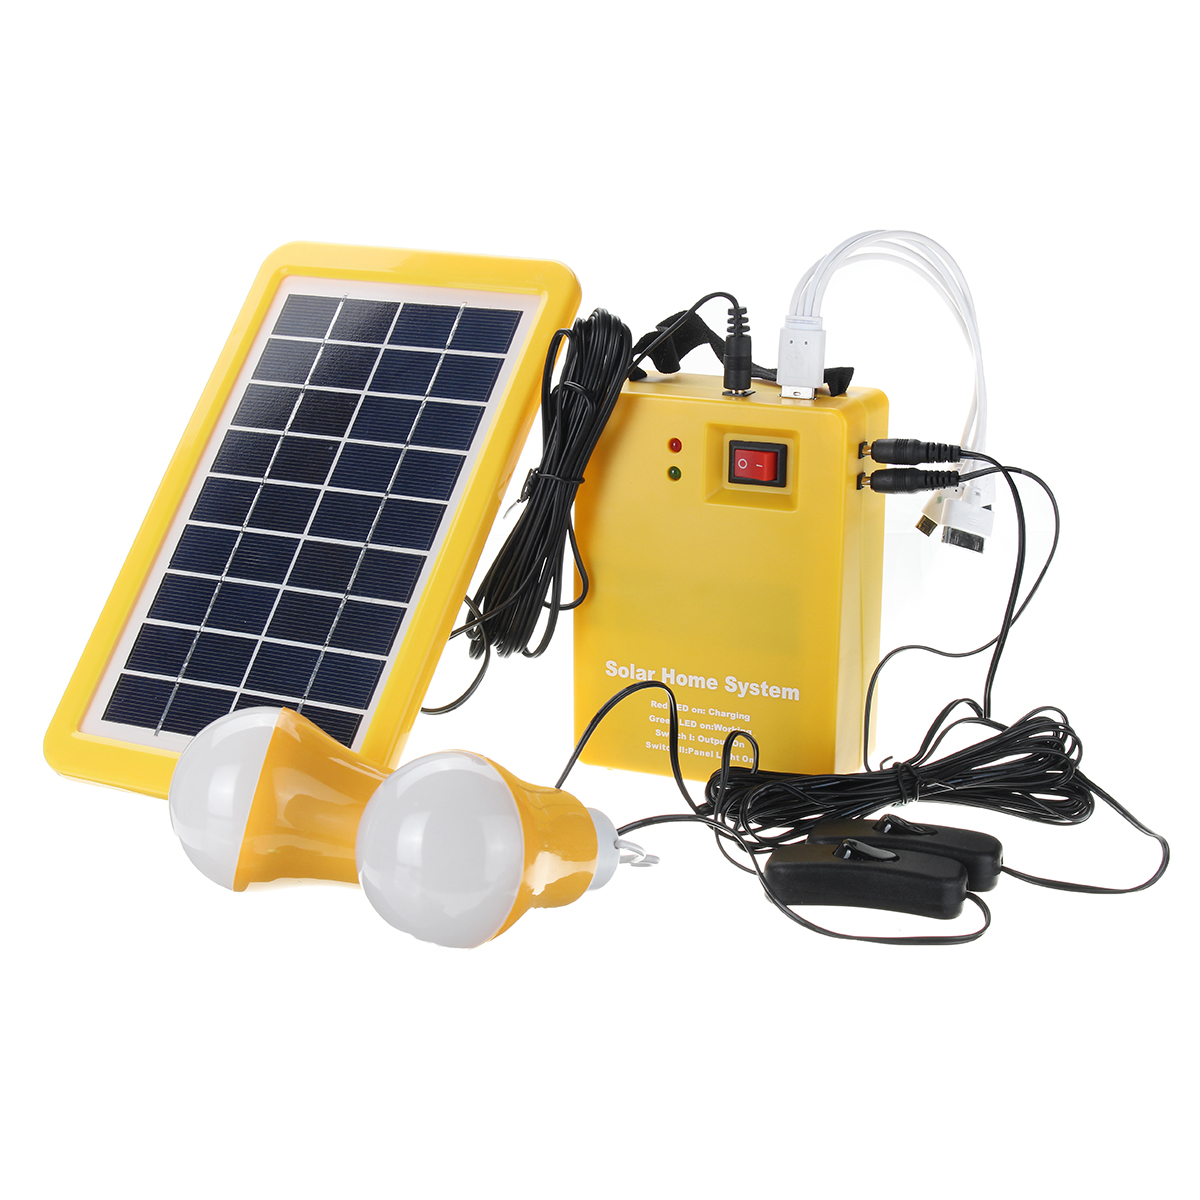 12v Dc Solar Panels Lighting Charging Generator Home Outdoor Energy Ed System